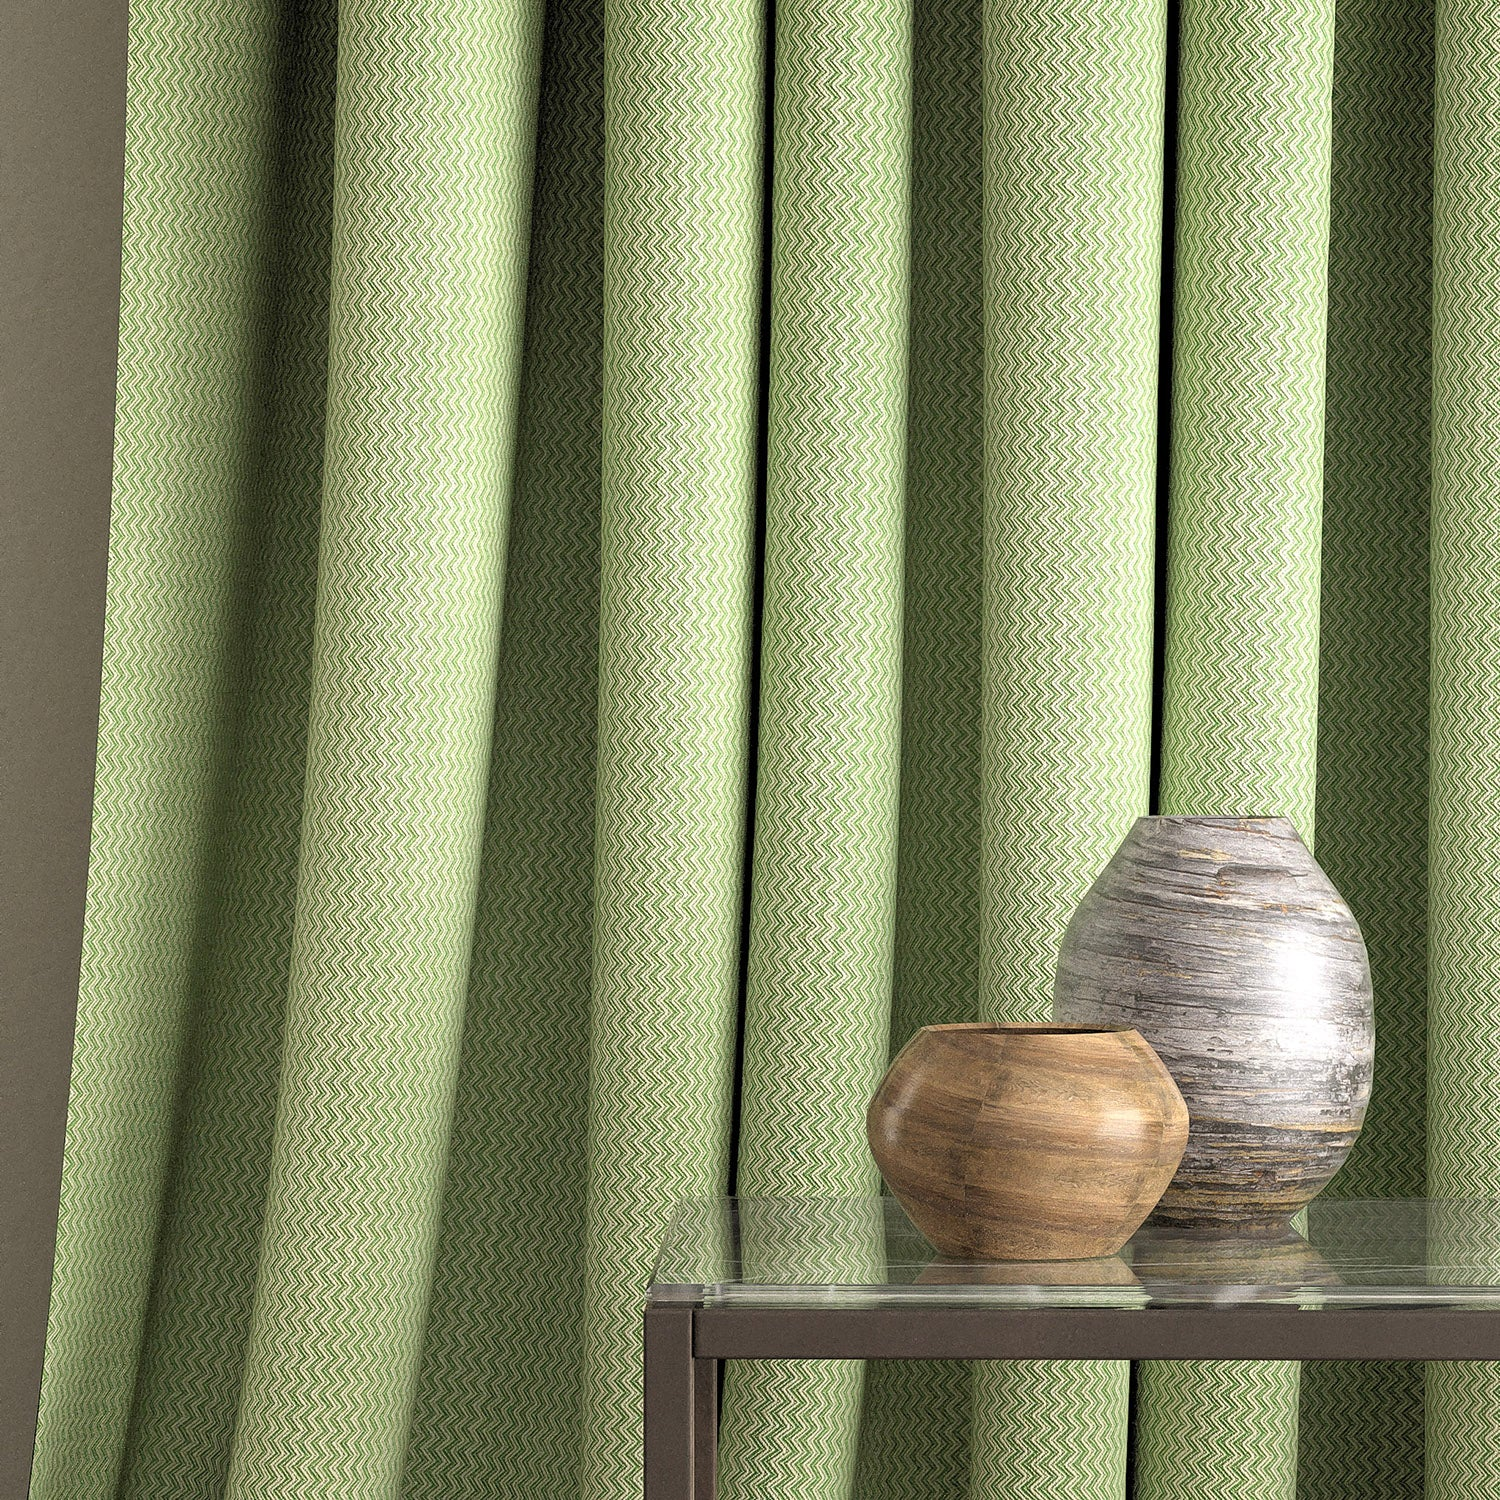 Curtain in a green fabric with zig zag weave and stain resistant finish